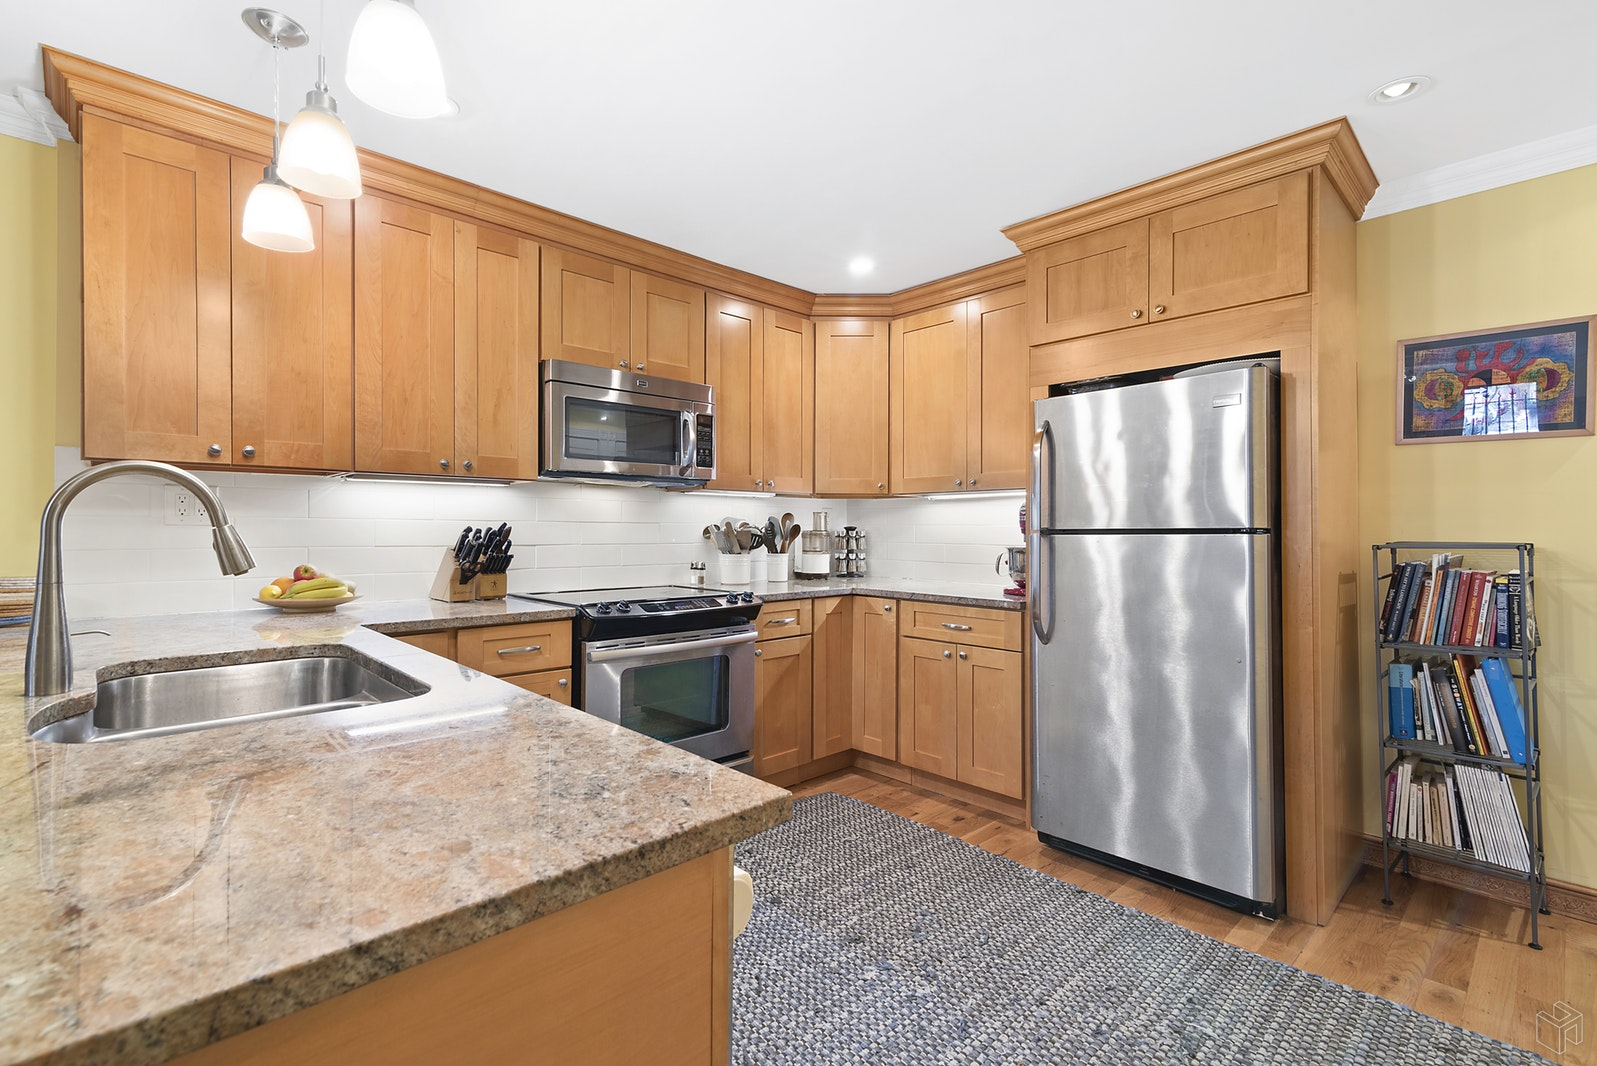 Illustrious Hamilton Heights Townhouse, Upper Manhattan, NYC, 10032, $2,795,000, Property For Sale, Halstead Real Estate, Photo 13